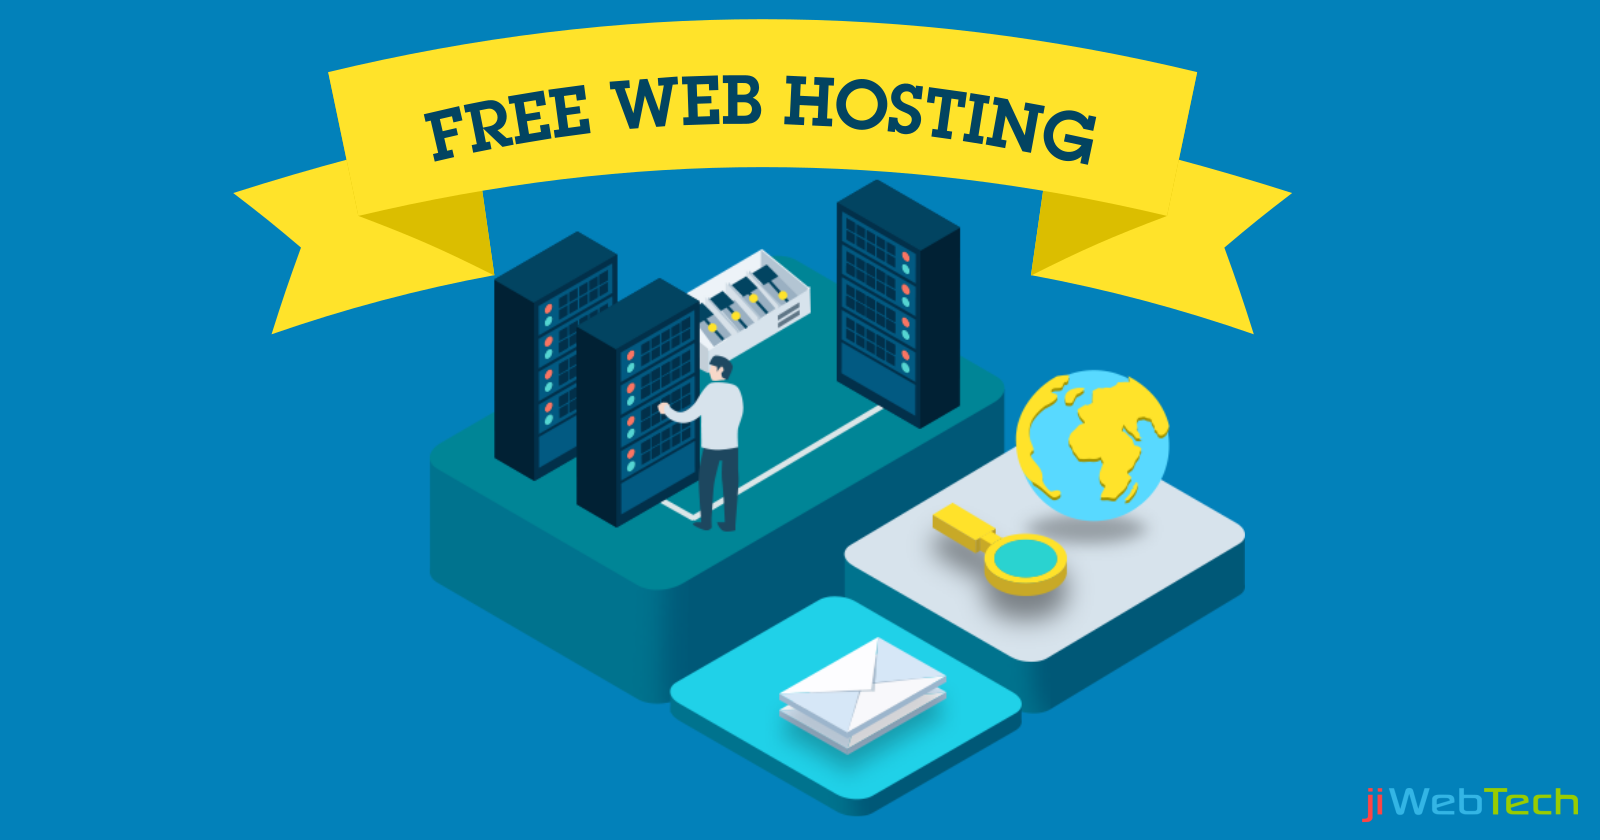 Consider This Guide Before Using Free Web Hosting